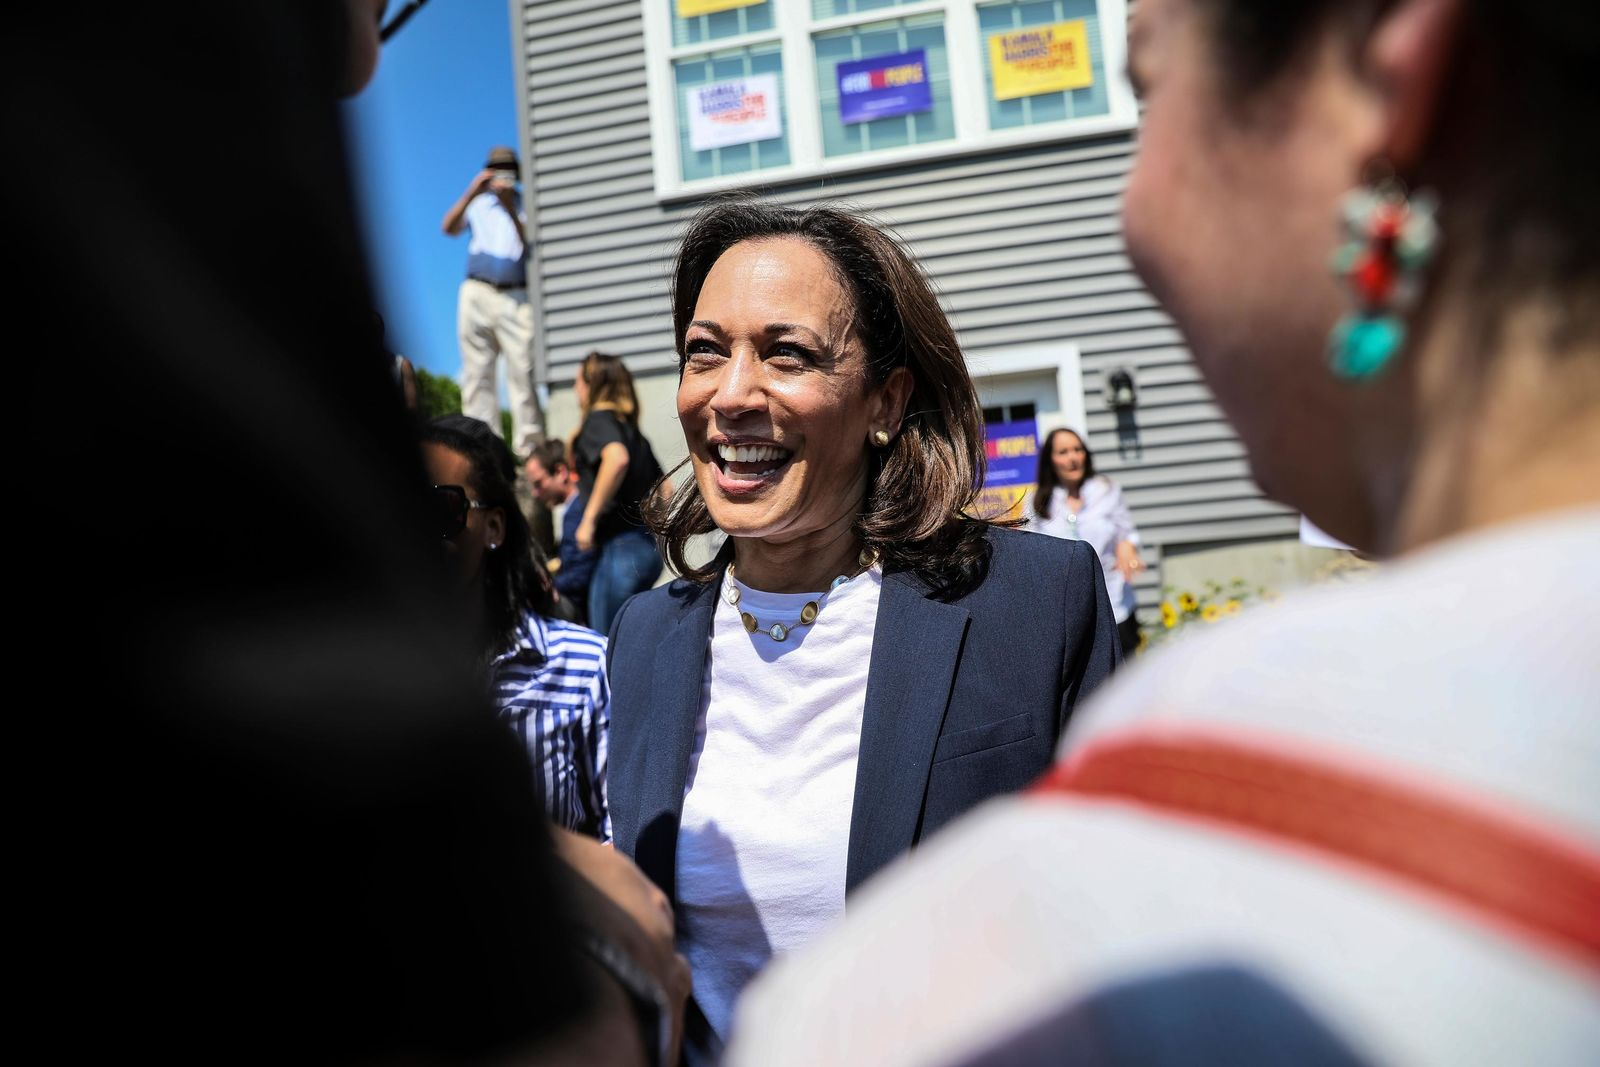 Supporters applaud as Democratic presidential candidate, U.S Sen. Kamala Harris, D-Calif., greets supporters after speaking at a house party in Gilford, N.H., Sunday, July 14, 2019. (AP Photo/ Cheryl Senter)